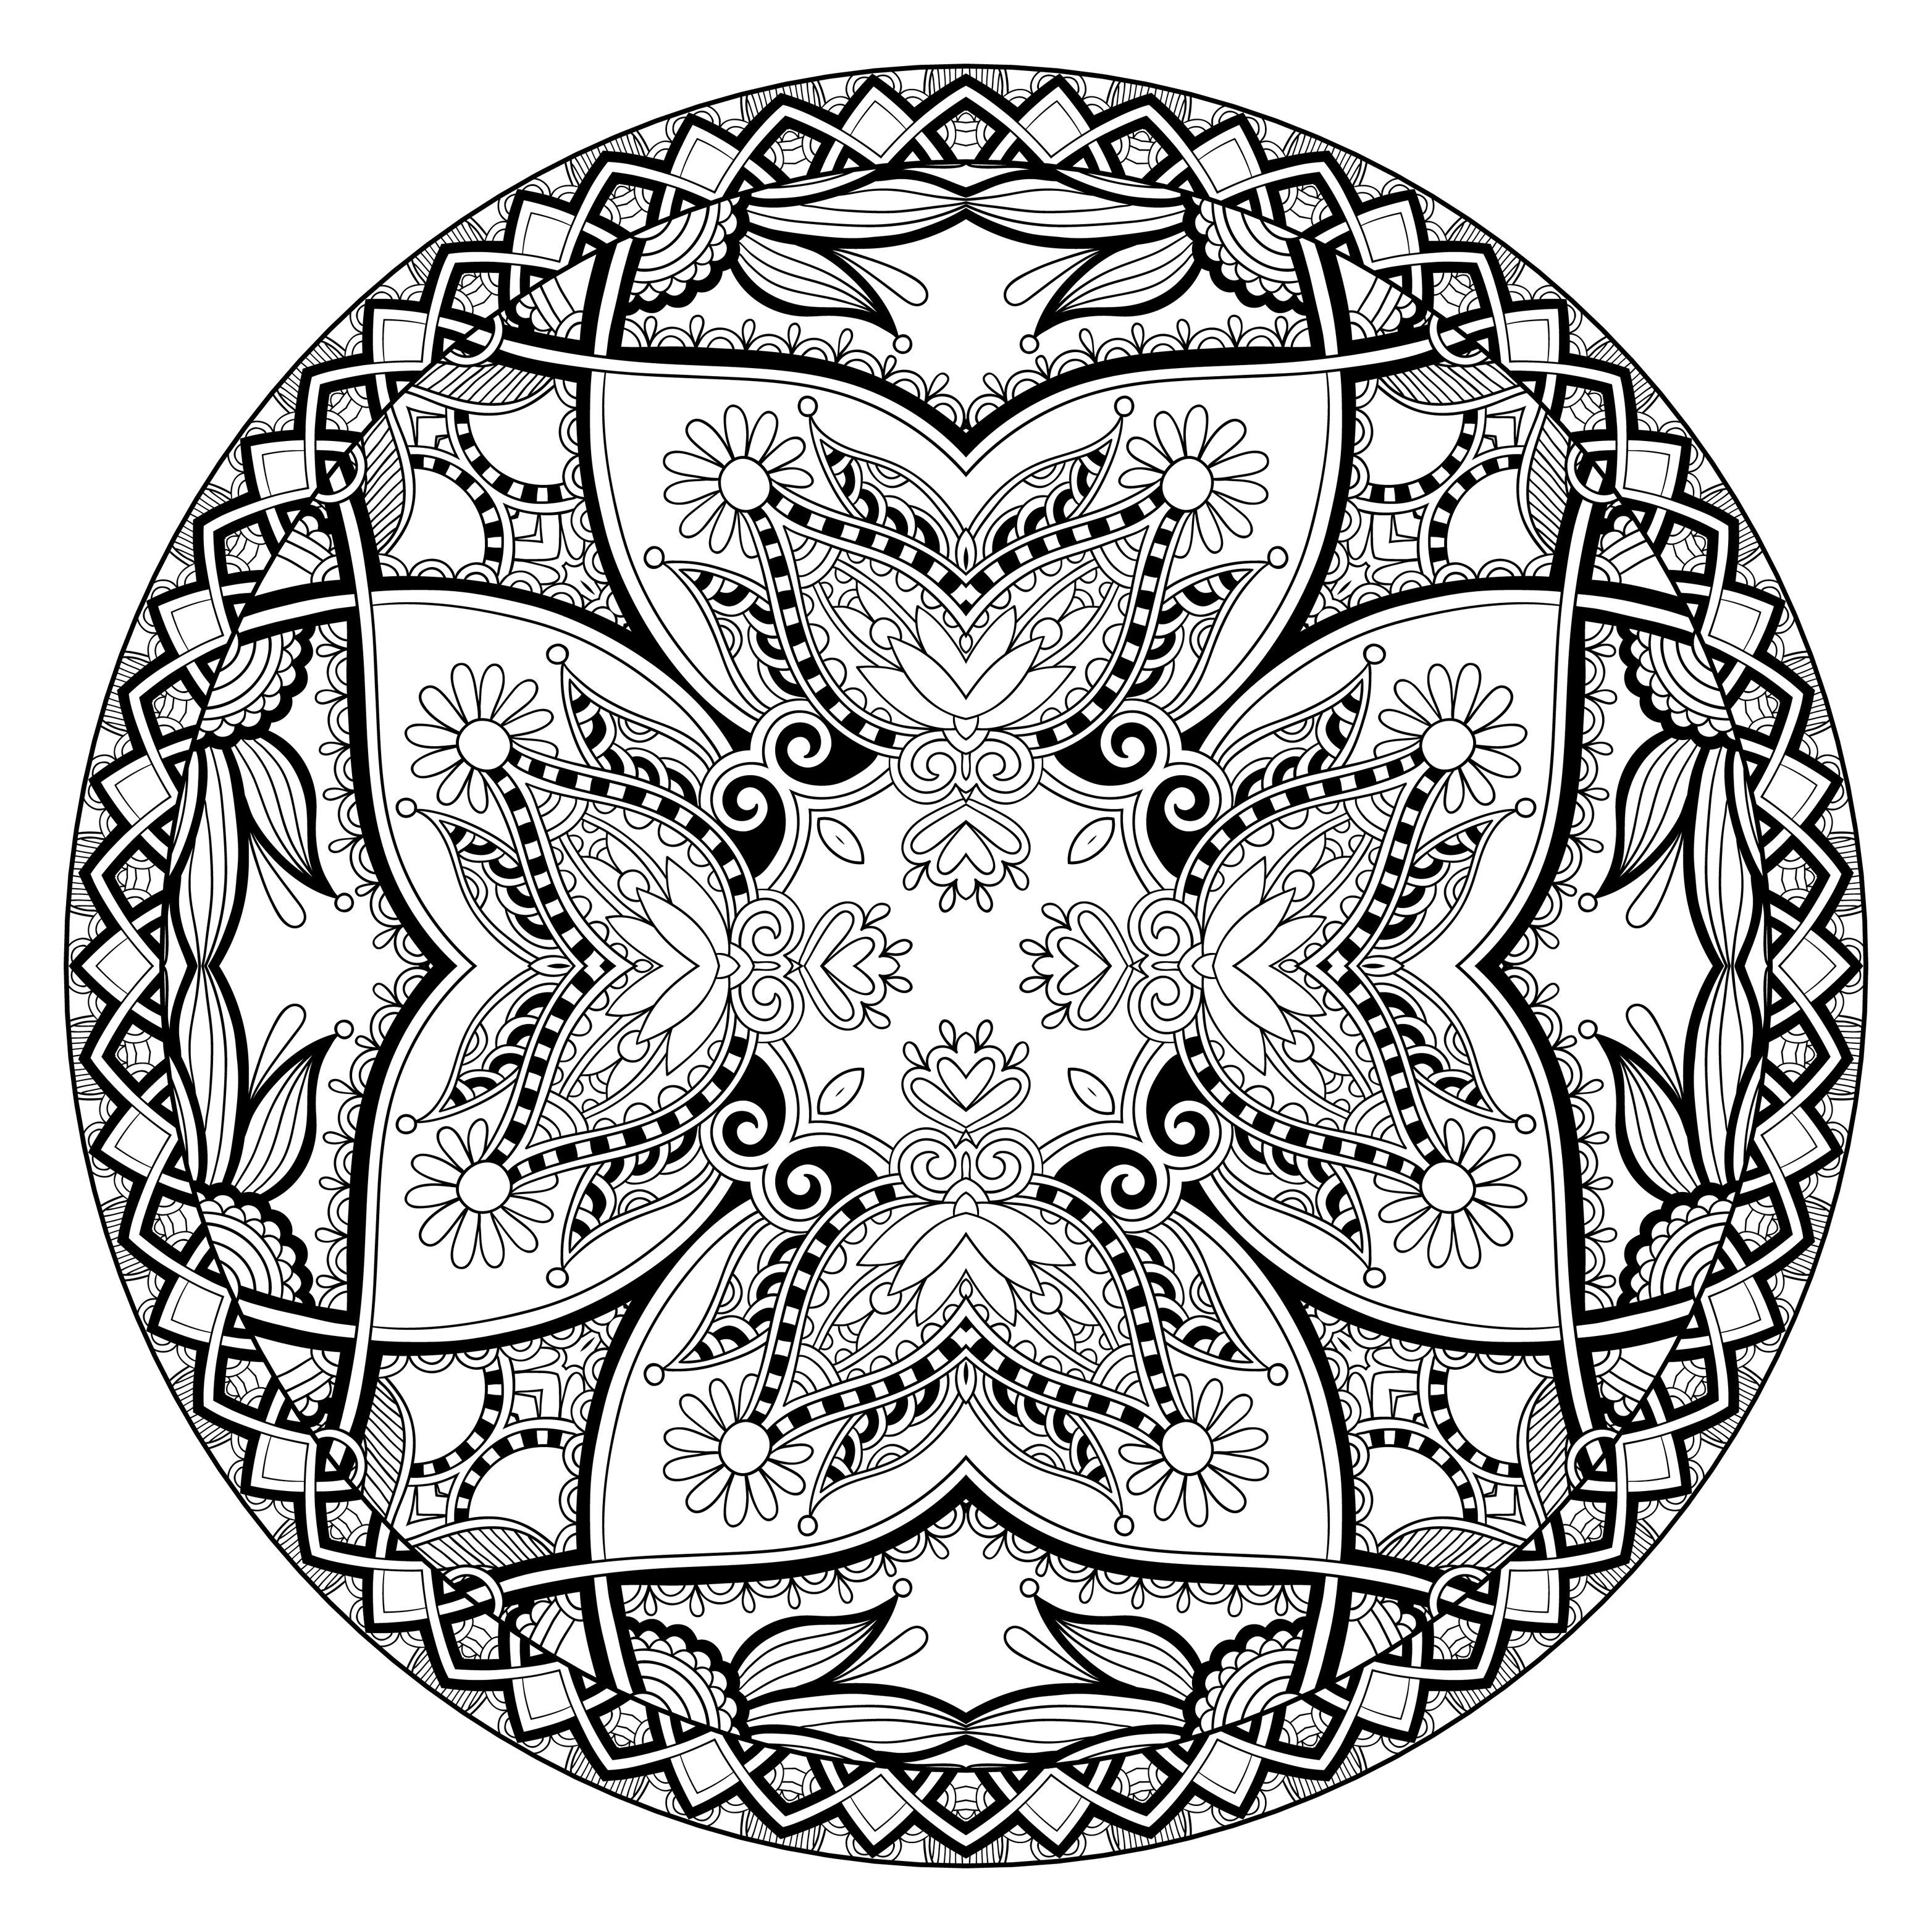 Mandala Coloring Pages Advanced Level Printable : Mandala coloring pages advanced level printable